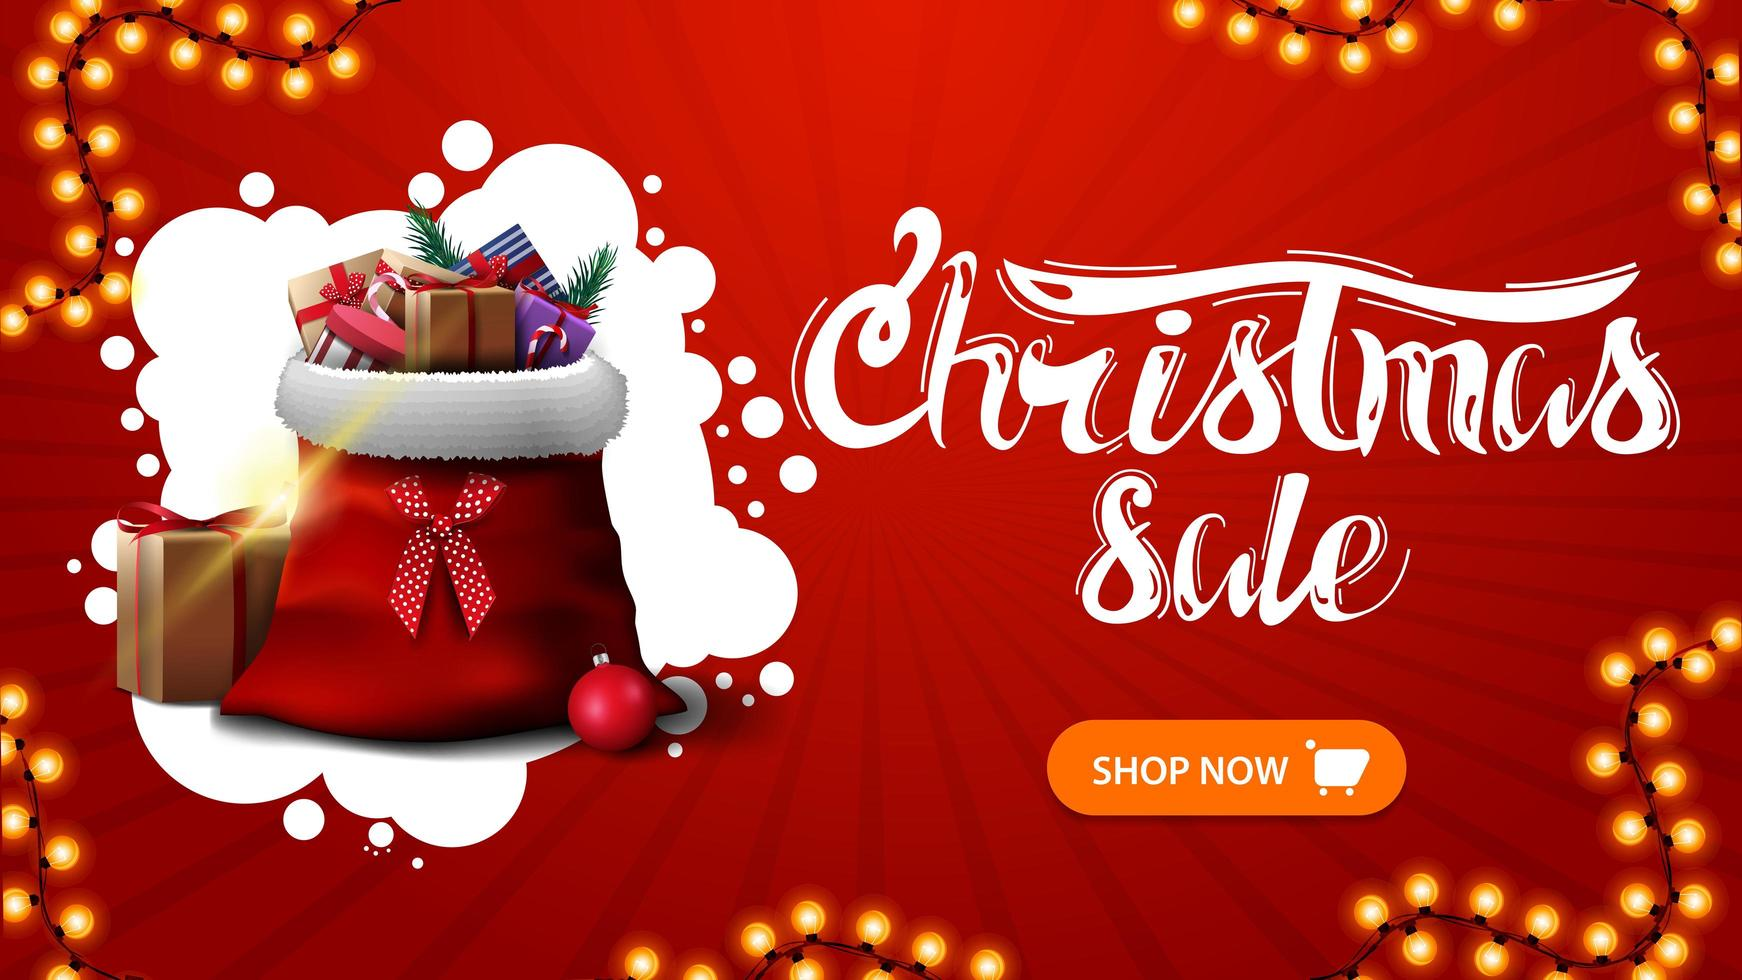 Christmas sale, red discount banner with abstract white cloud, garland, button and Santa Claus bag with presents vector